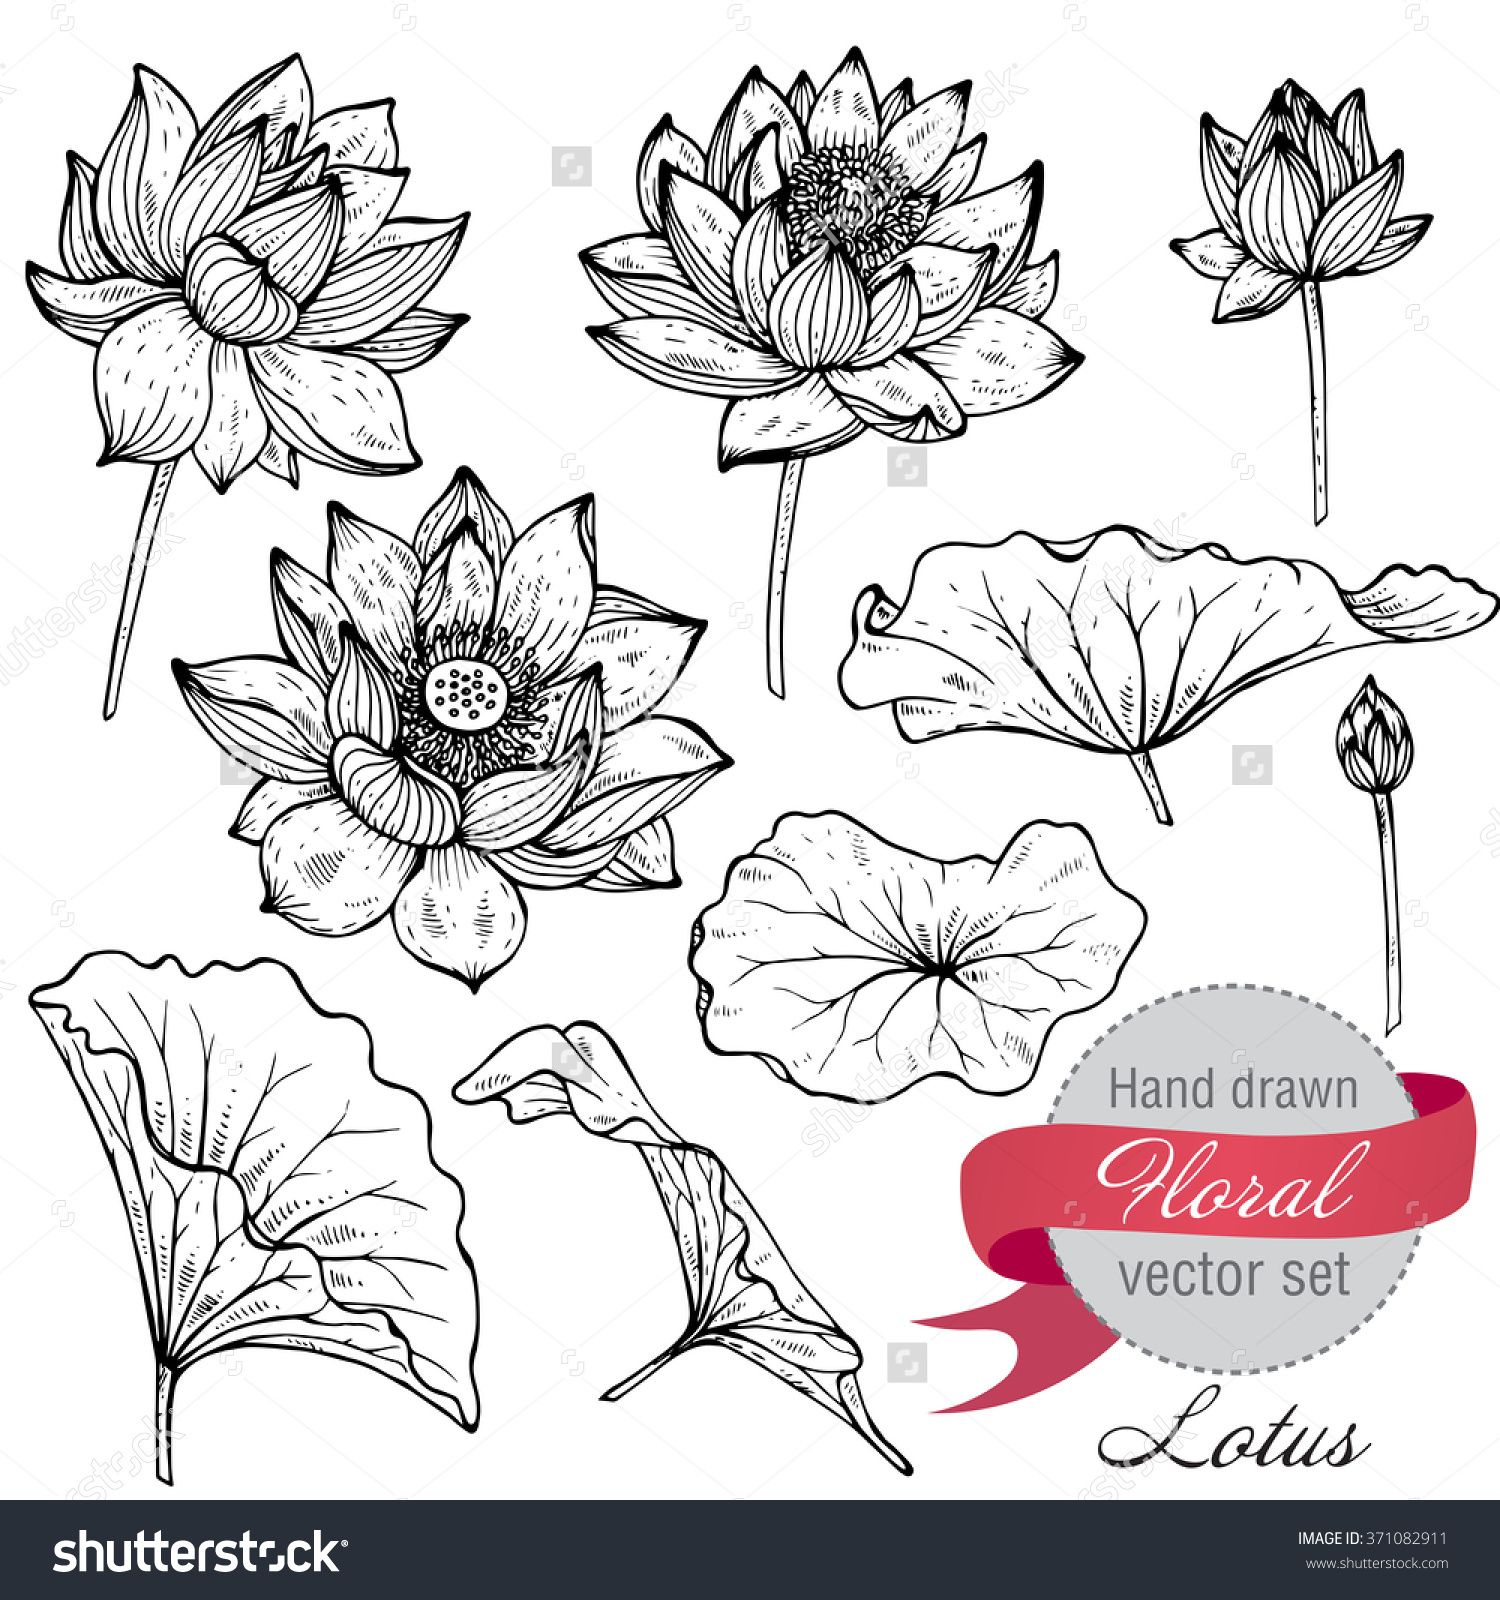 Vector set of hand drawn lotus flowers and leaves sketch floral vector set of hand drawn lotus flowers and leaves sketch floral botany collection in graphic mightylinksfo Gallery